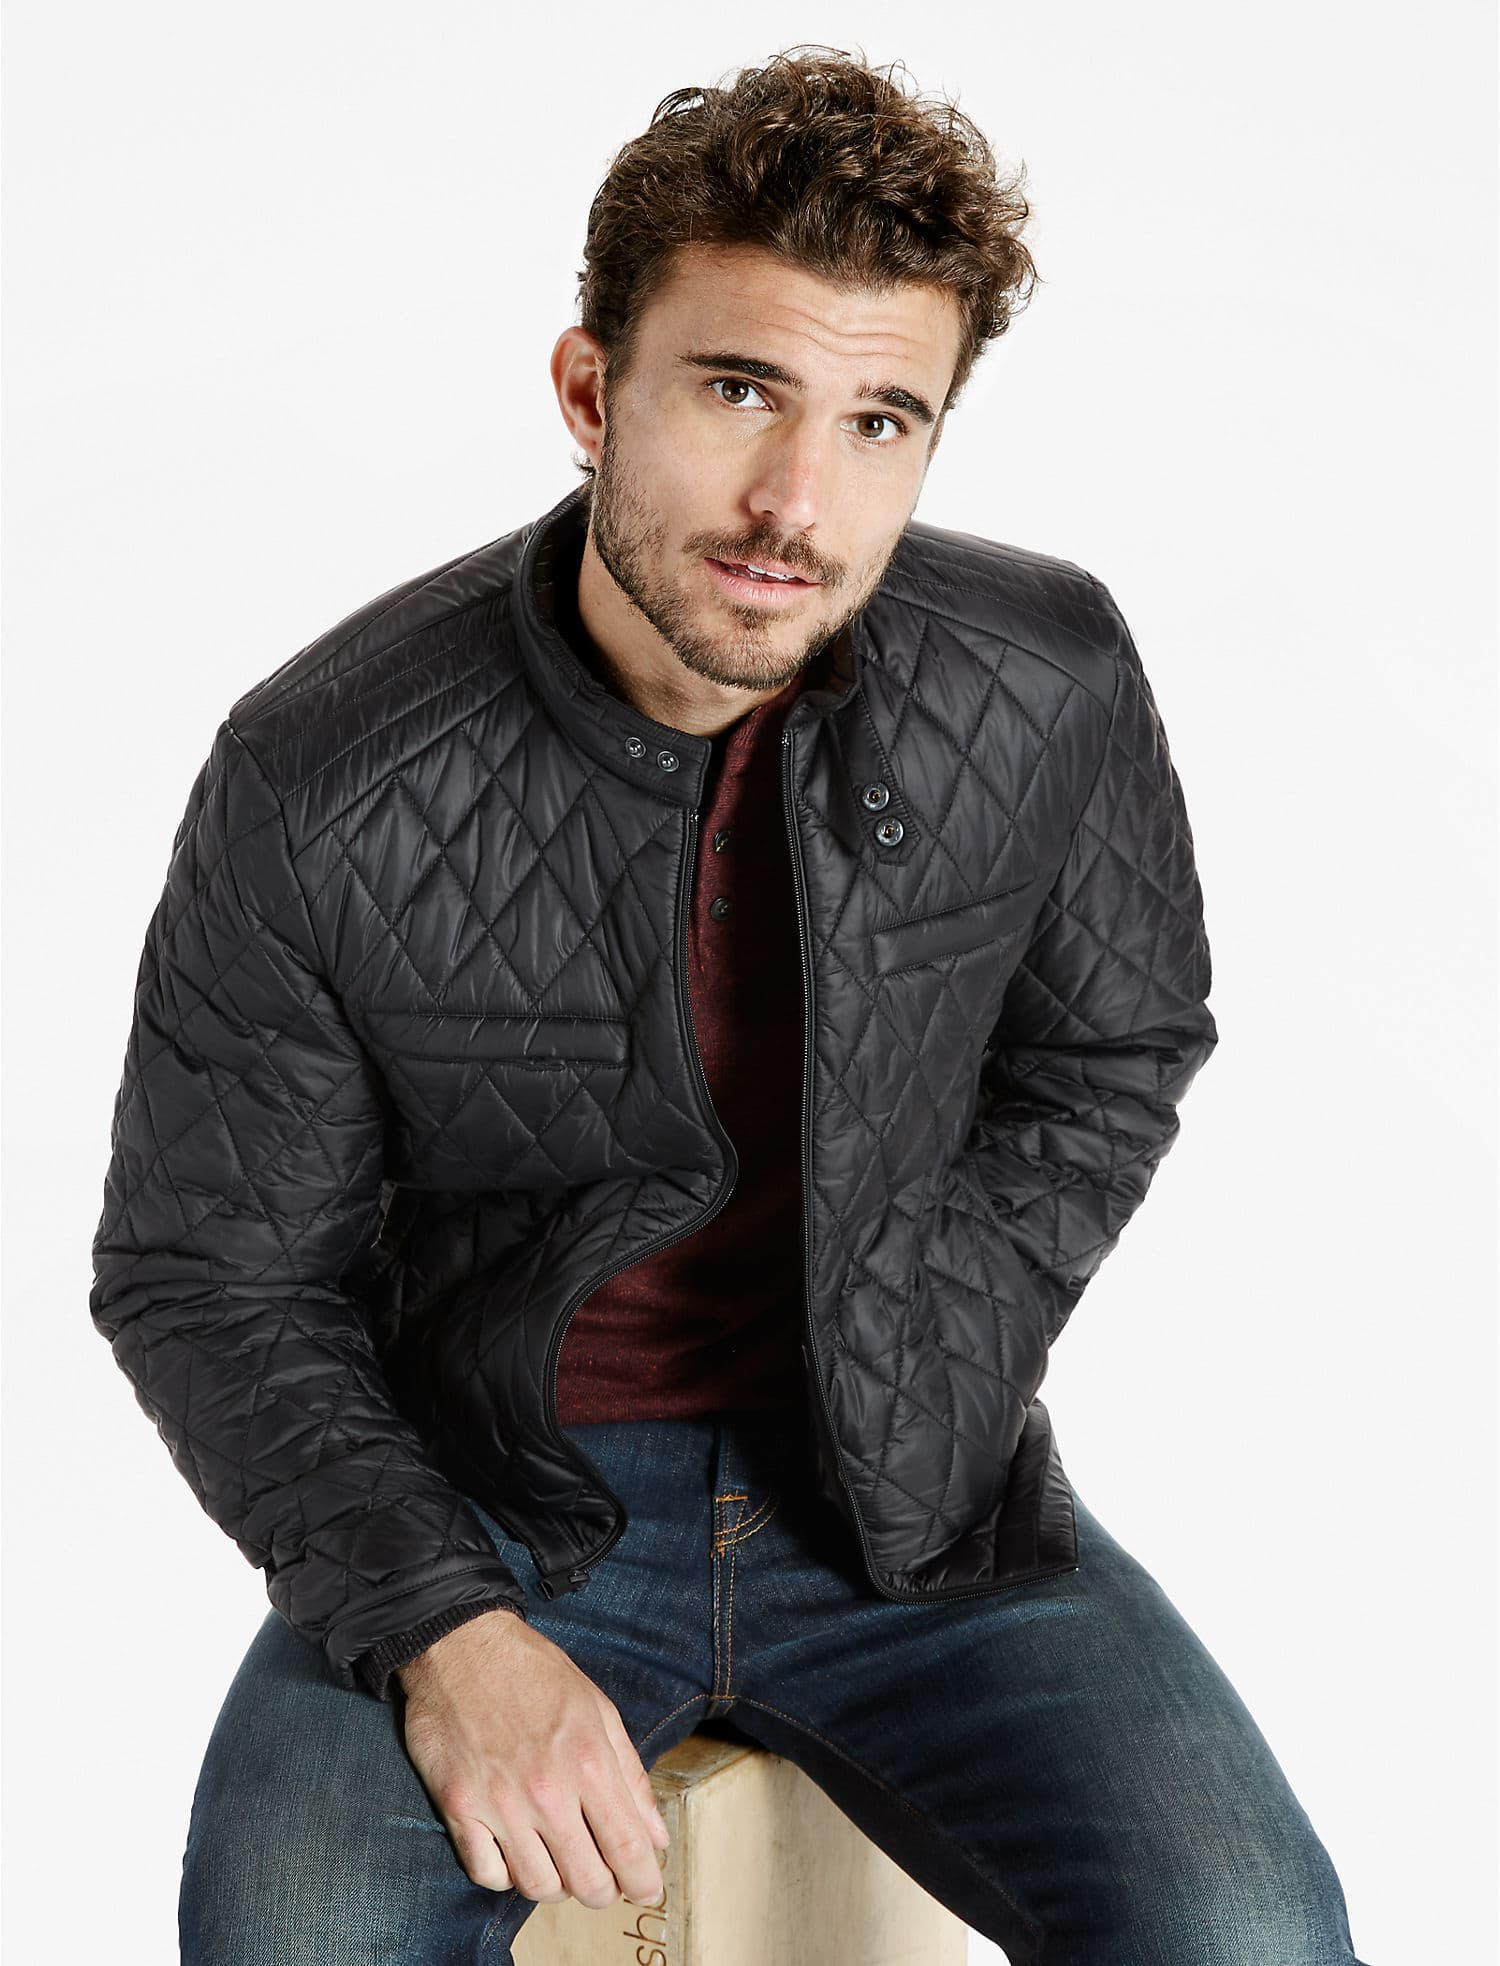 Lucky Brand has a Cafe' Style nylon Racer Jacket on sale for $50.00 regularly $129.00